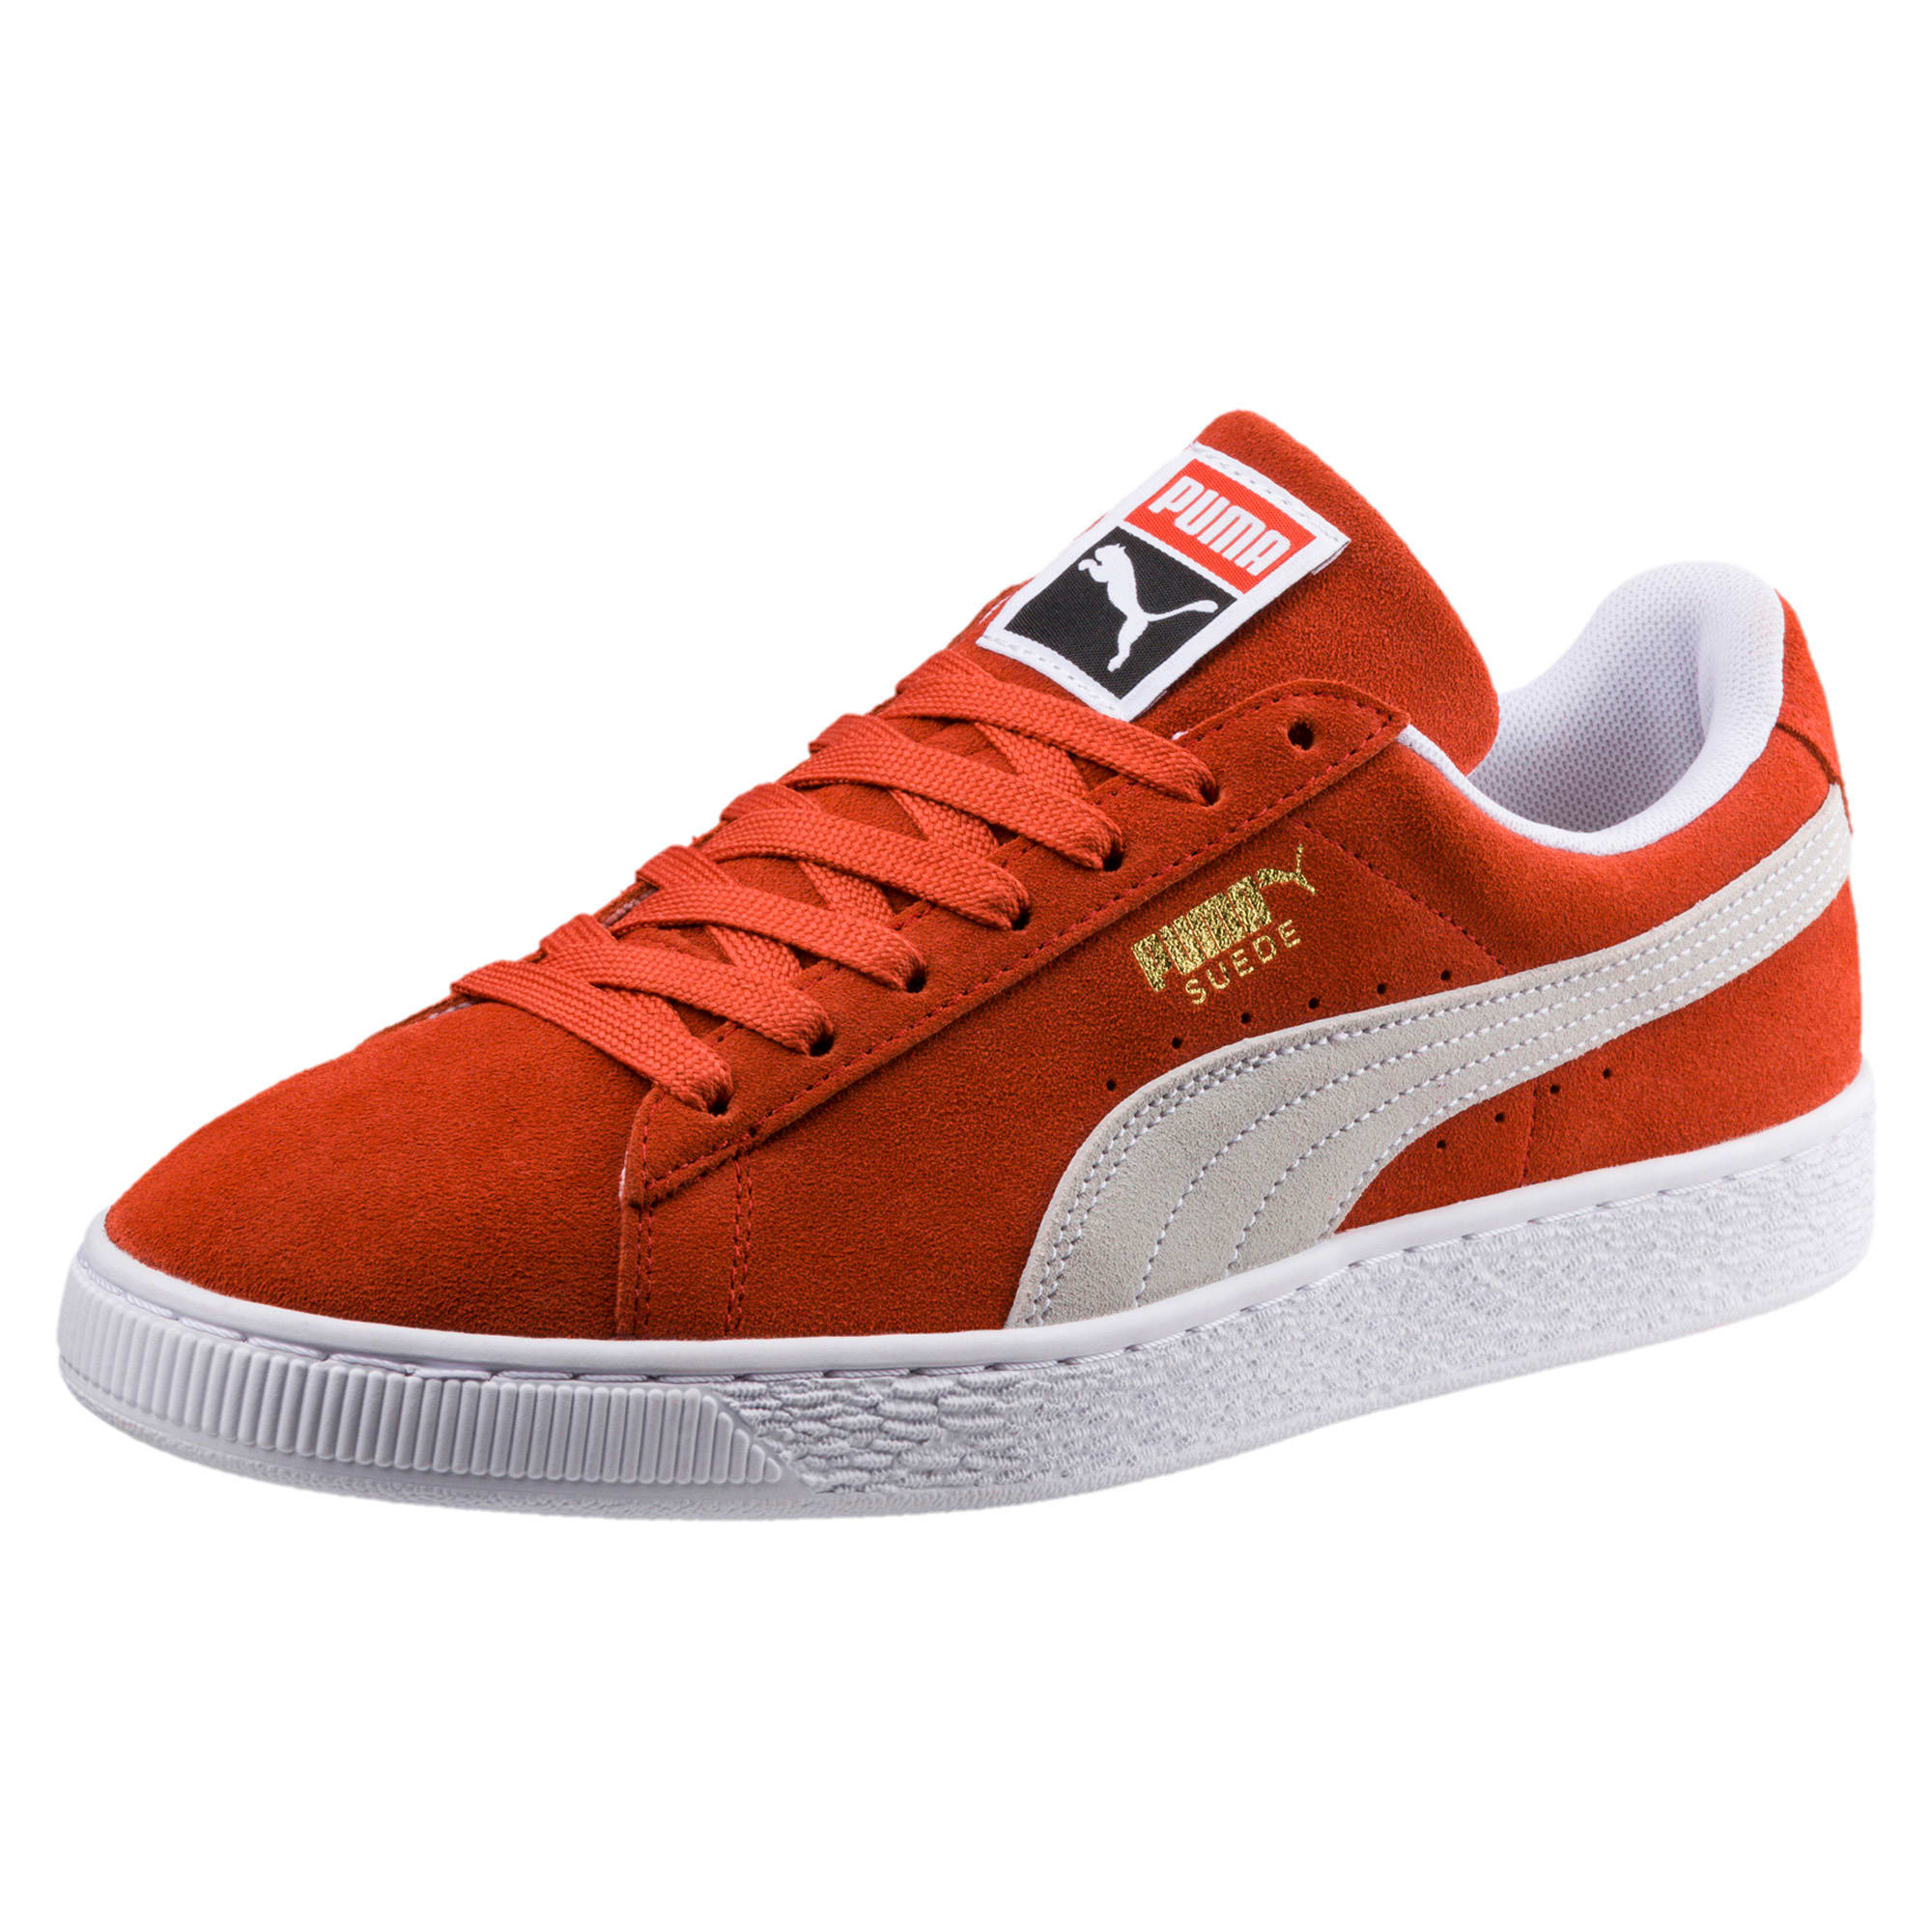 Thumbnail 1 of Suede Classic Trainers, Burnt Ochre-Puma White, medium-IND